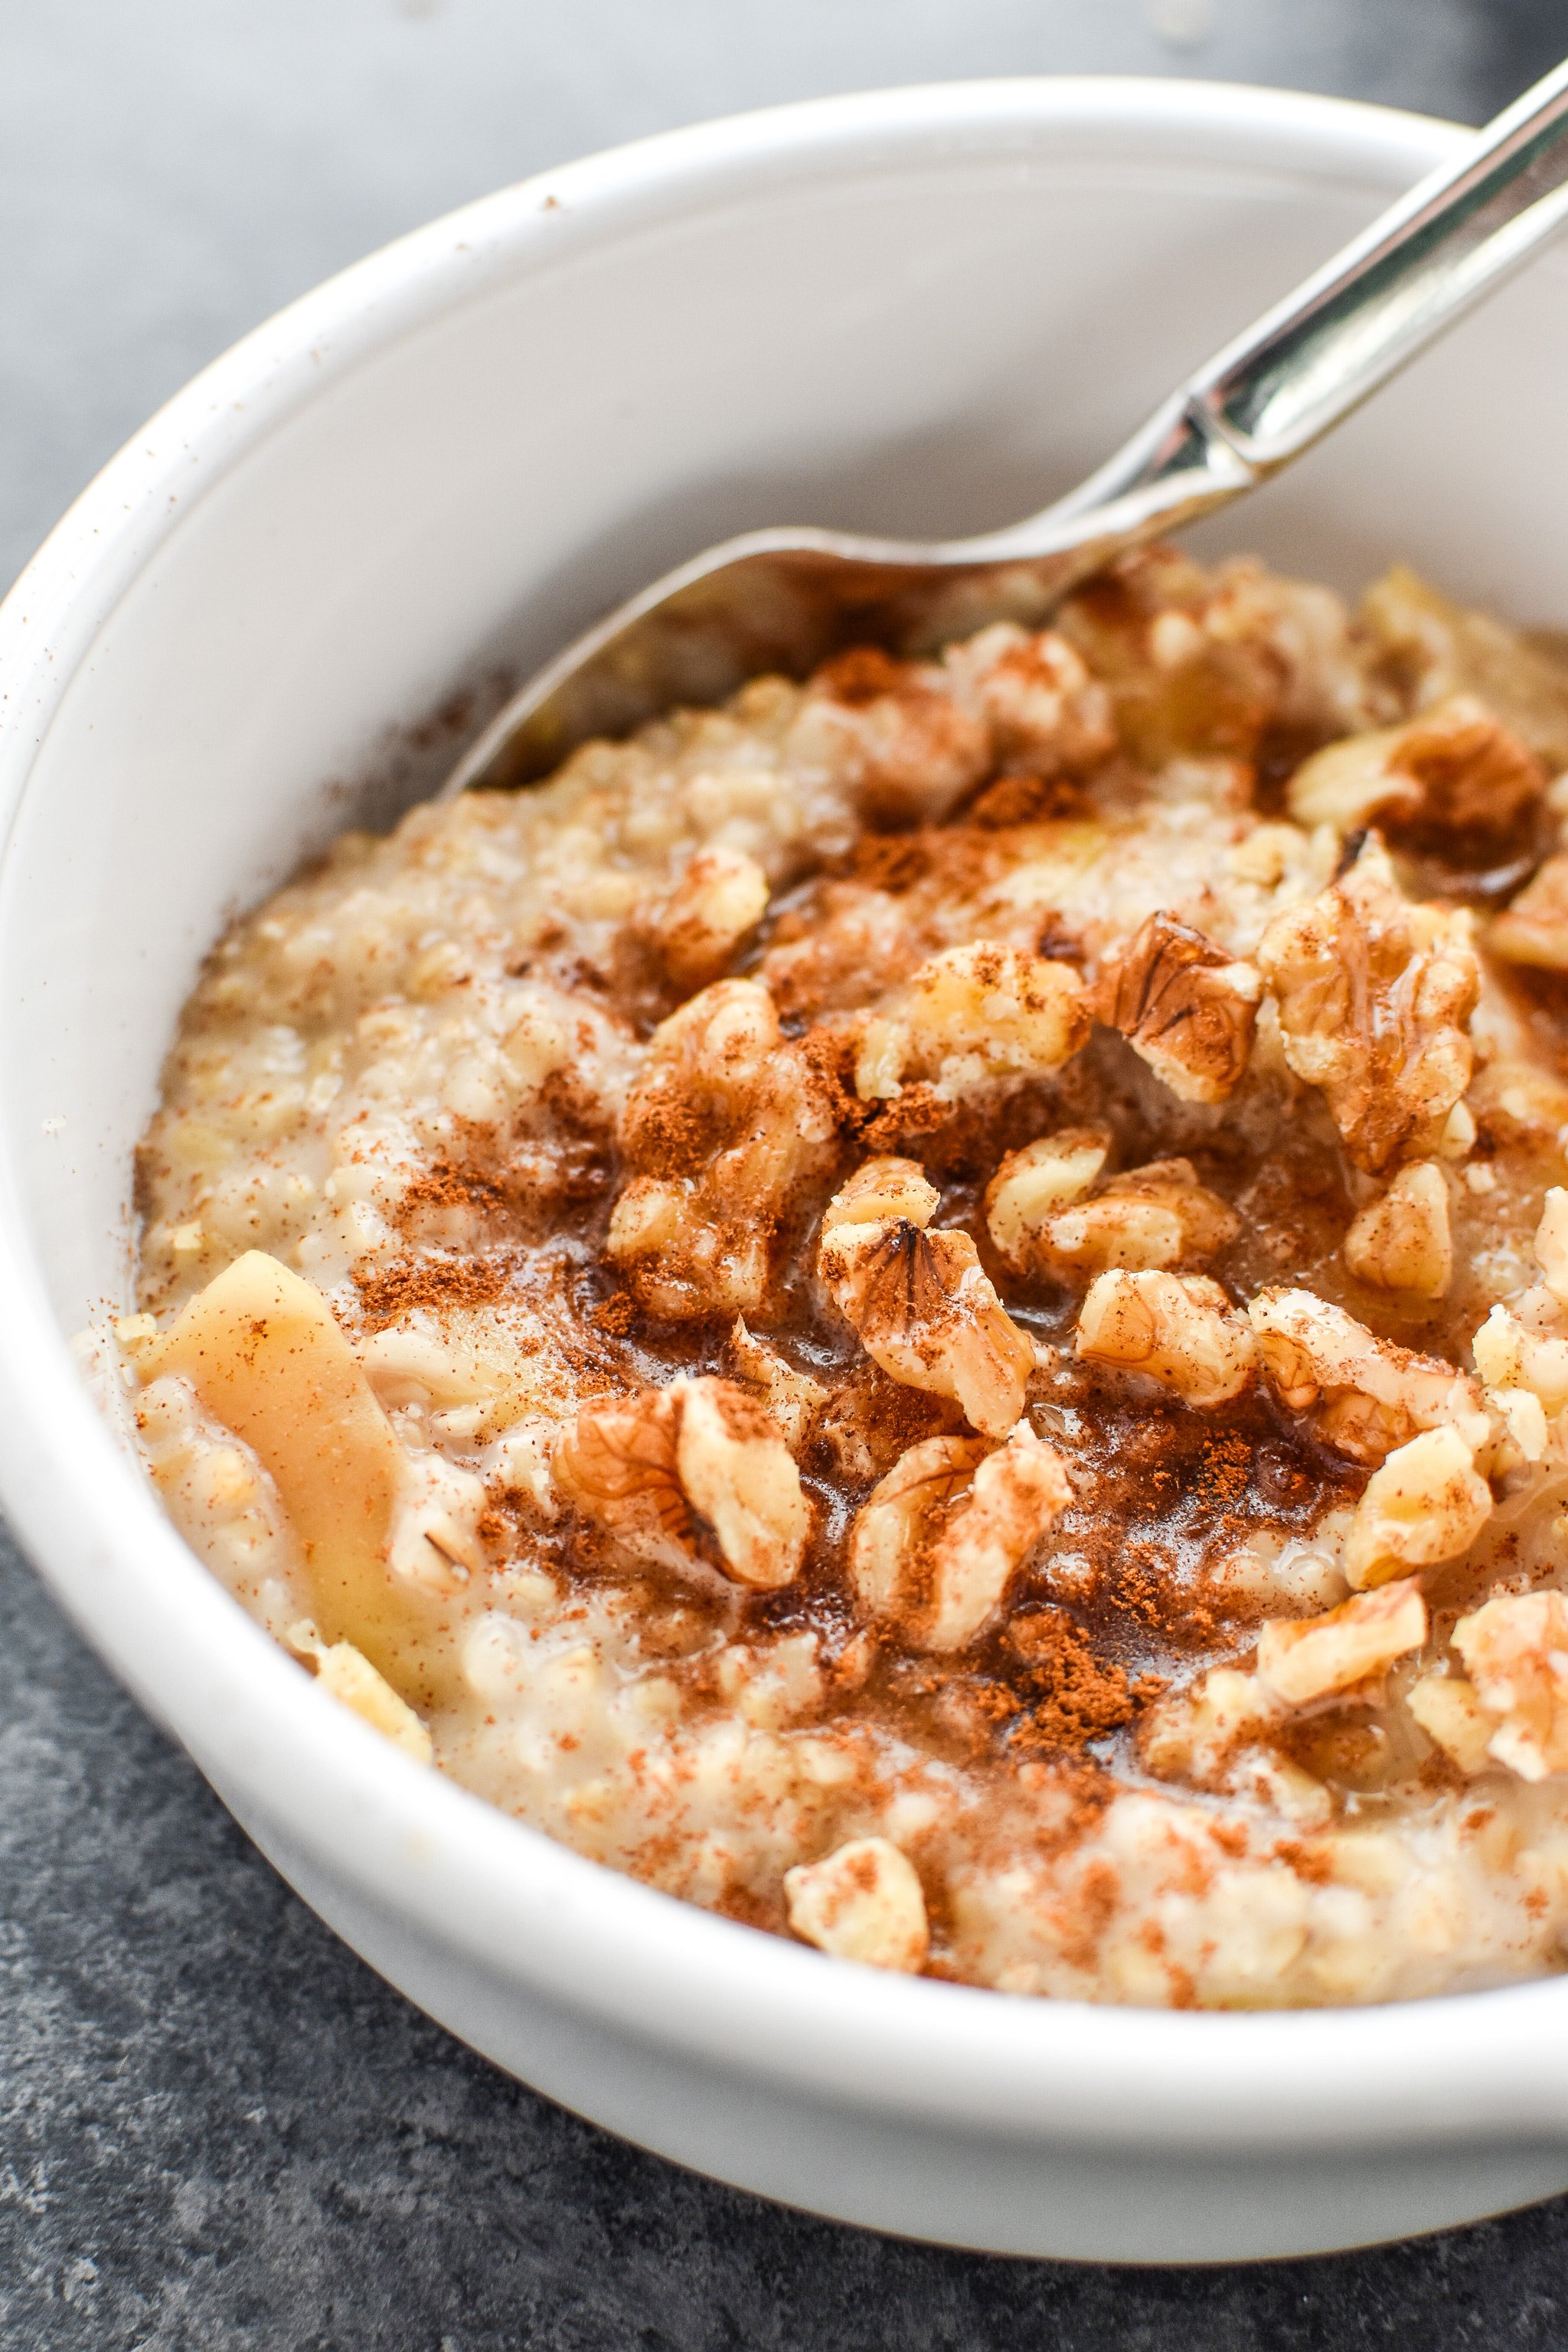 A bowl of cooked steel cut oats with nuts and cinnamon.